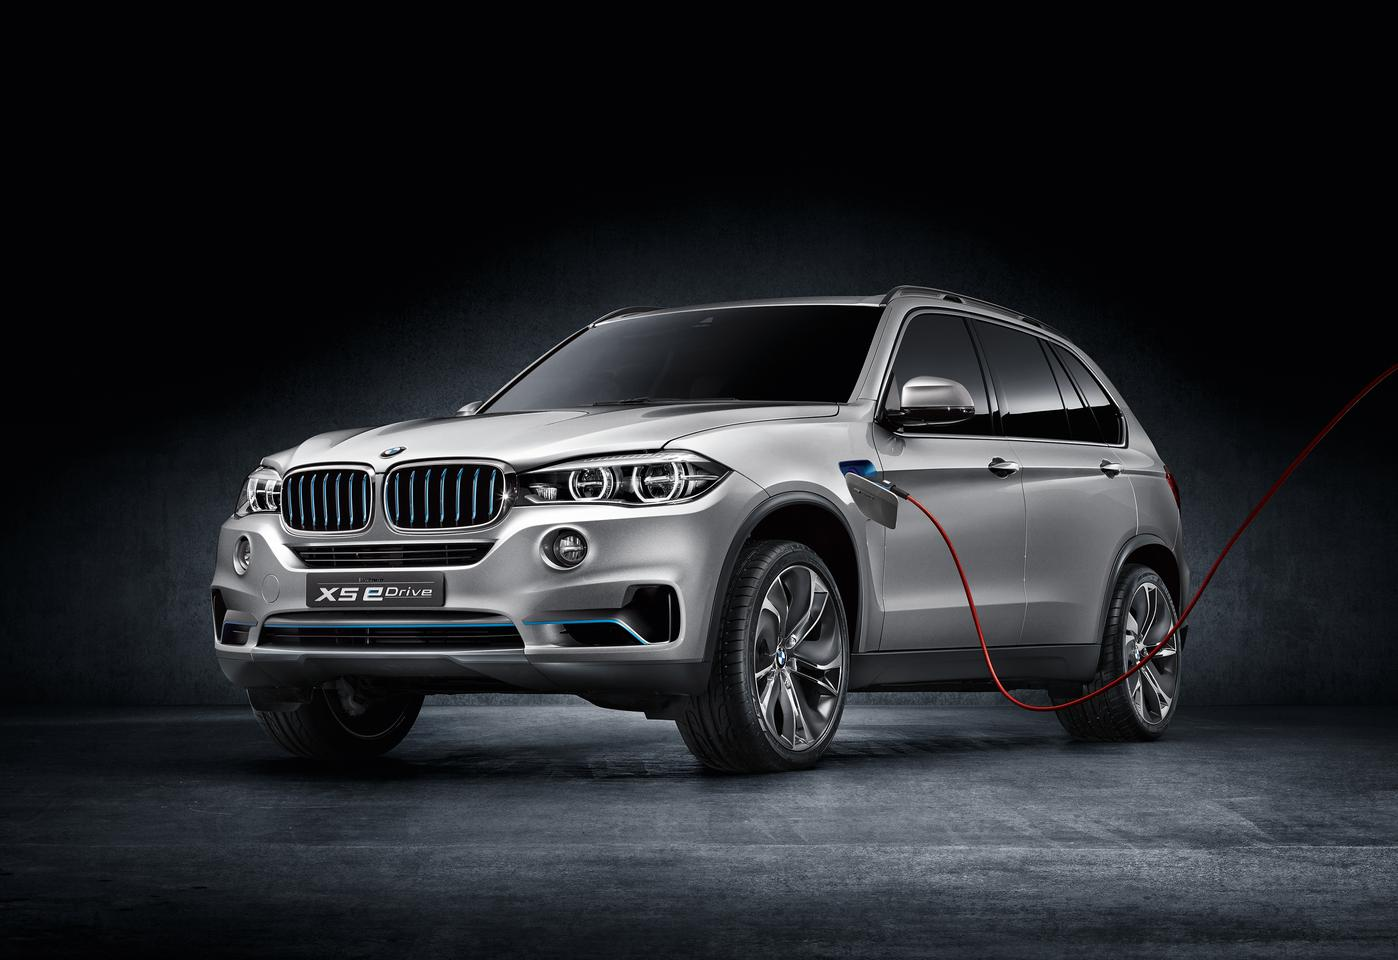 The BMW Concept X5 eDrive has a plug-in hybrid powertrain